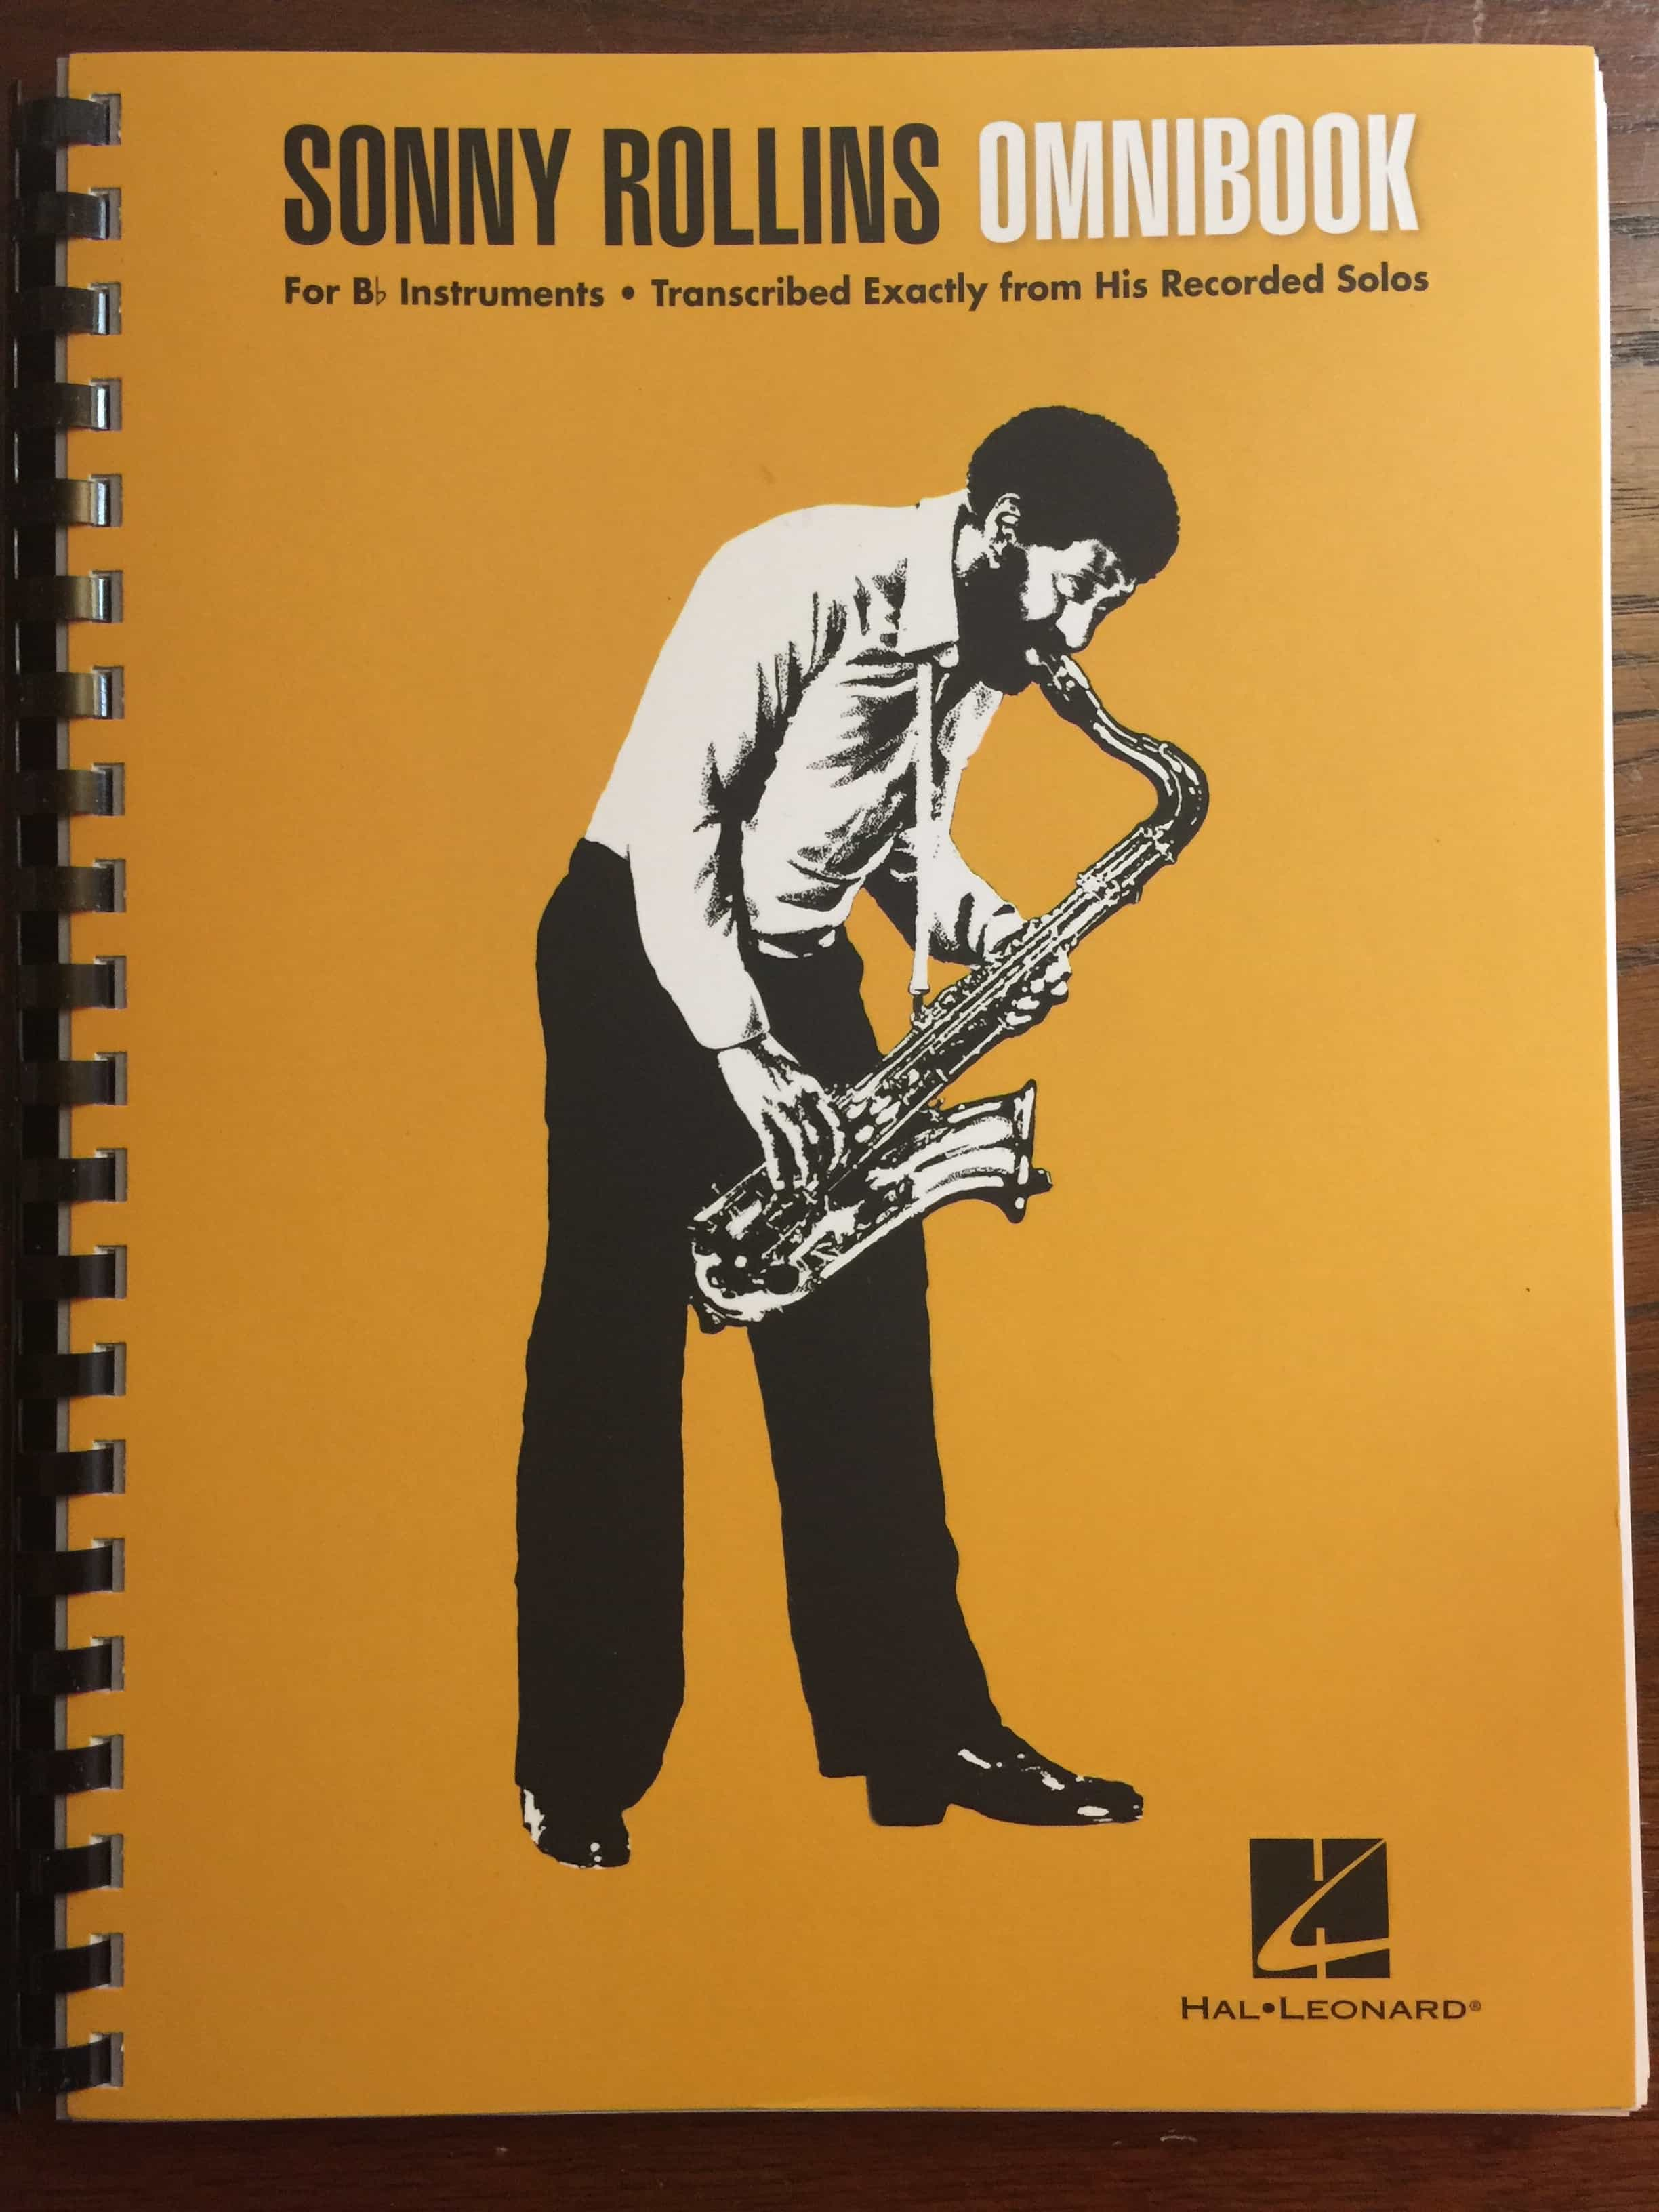 The Sonny Rollins Omnibook Review